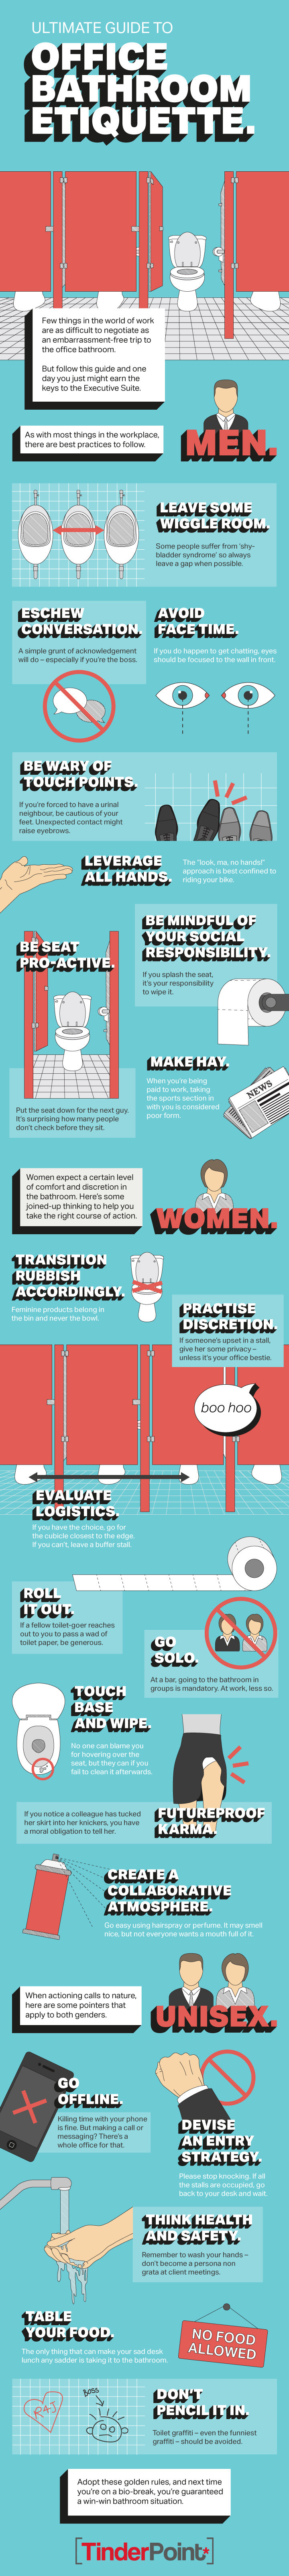 Infographic: The Ultimate Guide to Office Bathroom Etiquette